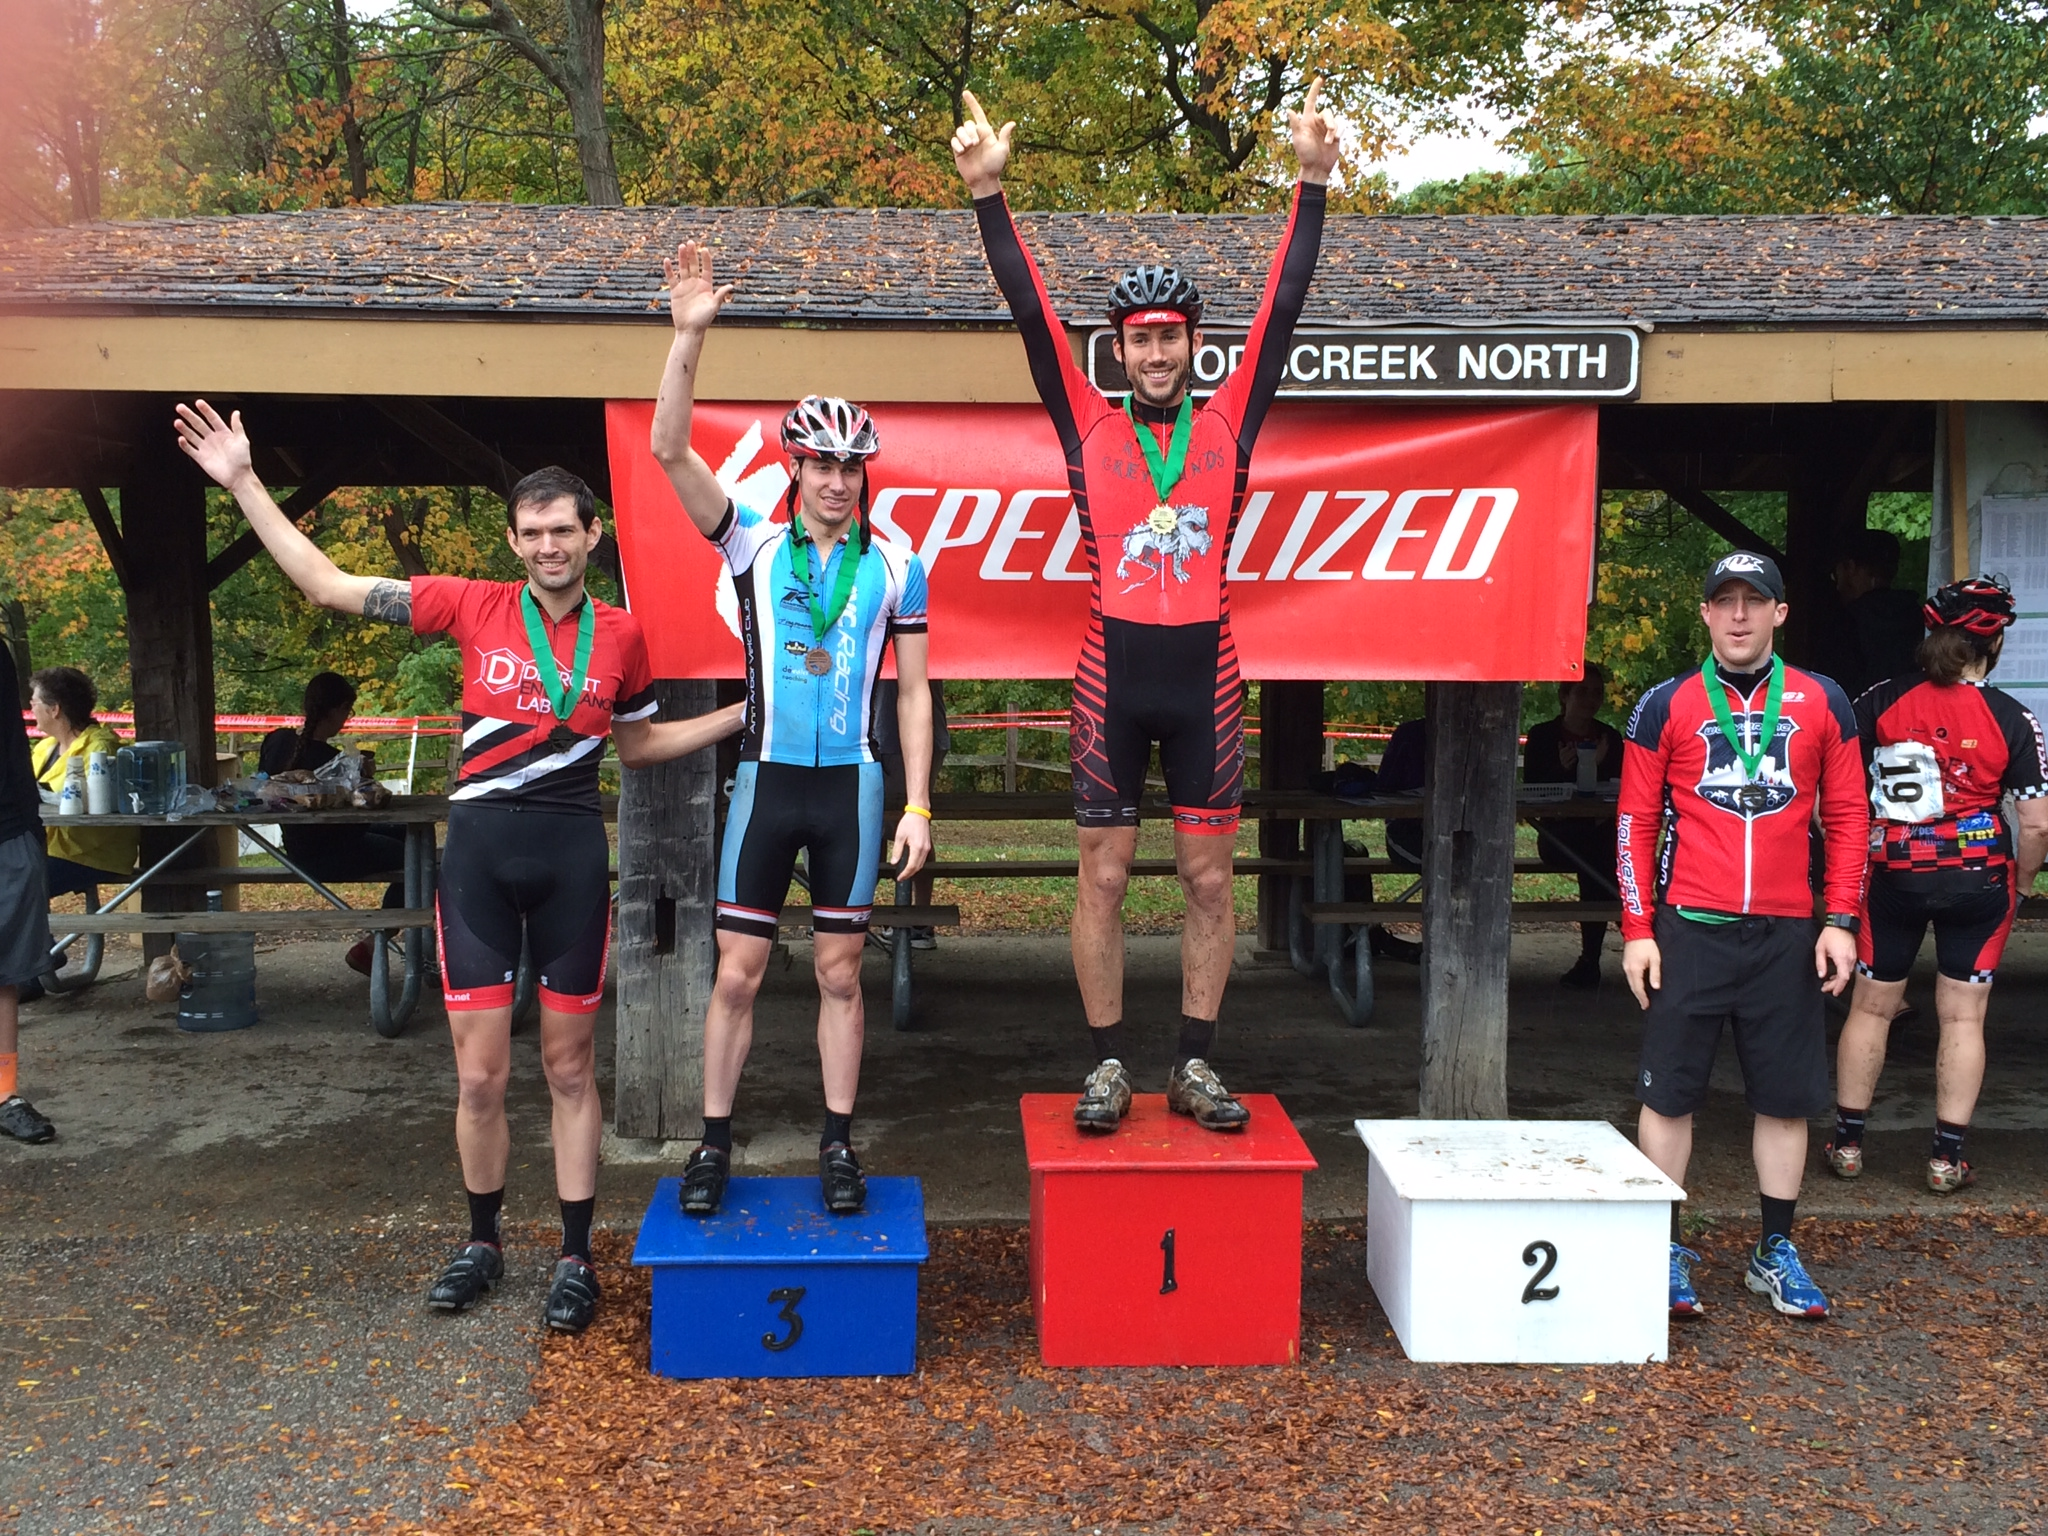 Danny on the podium in his first cat 3 race. Danny, you need to upgrade again.